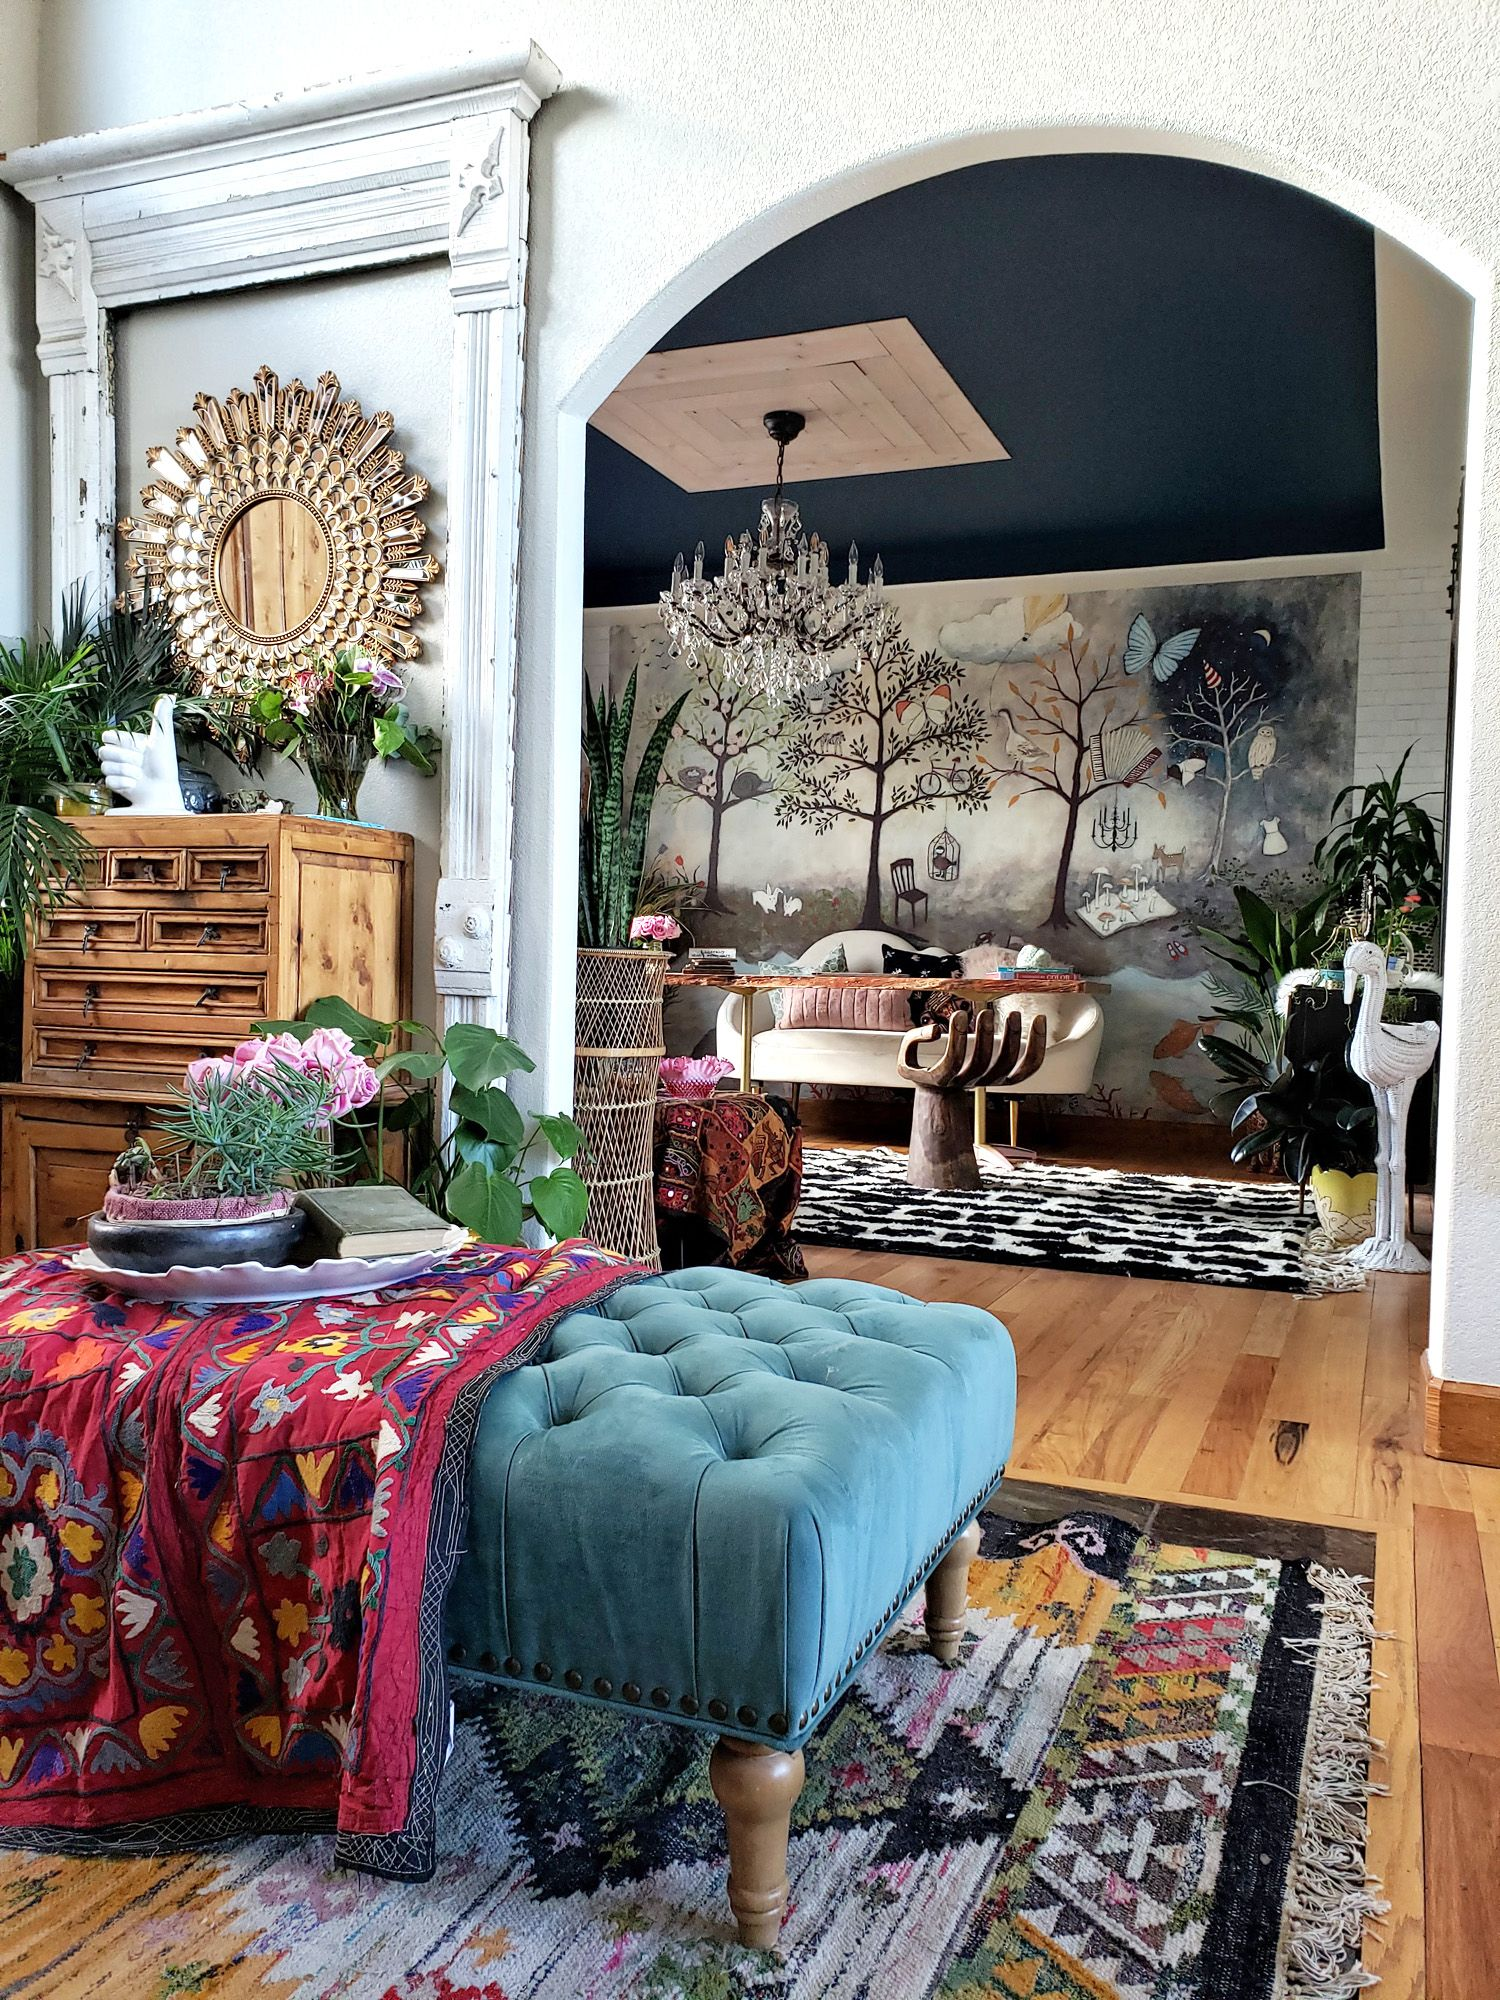 The Sophisticated Whimsical Home Office Orc Sources Eclectic Twist Whimsical Home Eclectic Home Eclectic Interior Whimsical living room decor